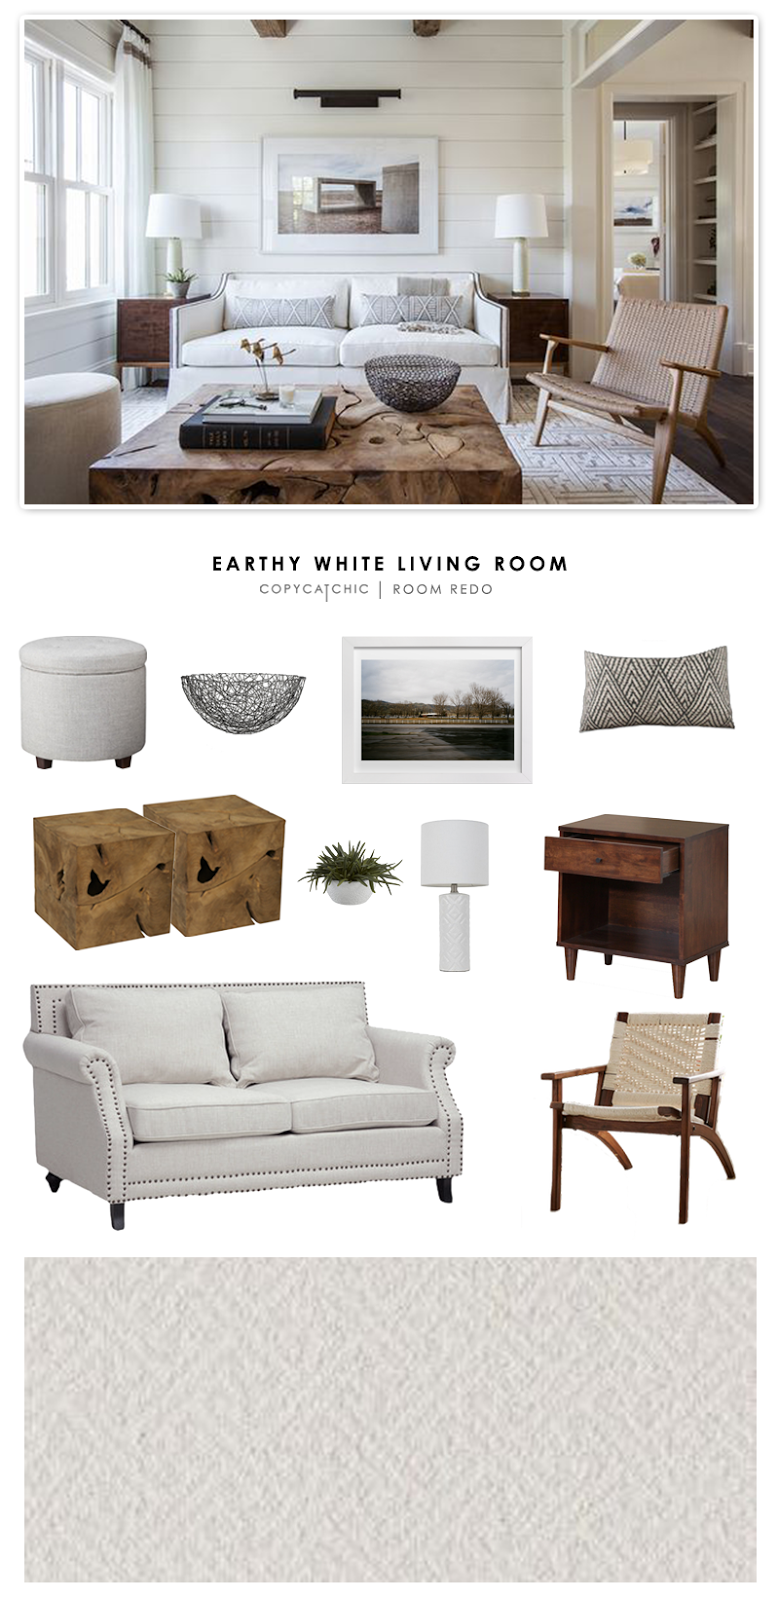 Copy Cat Chic Room Redo Earthy White Living Room